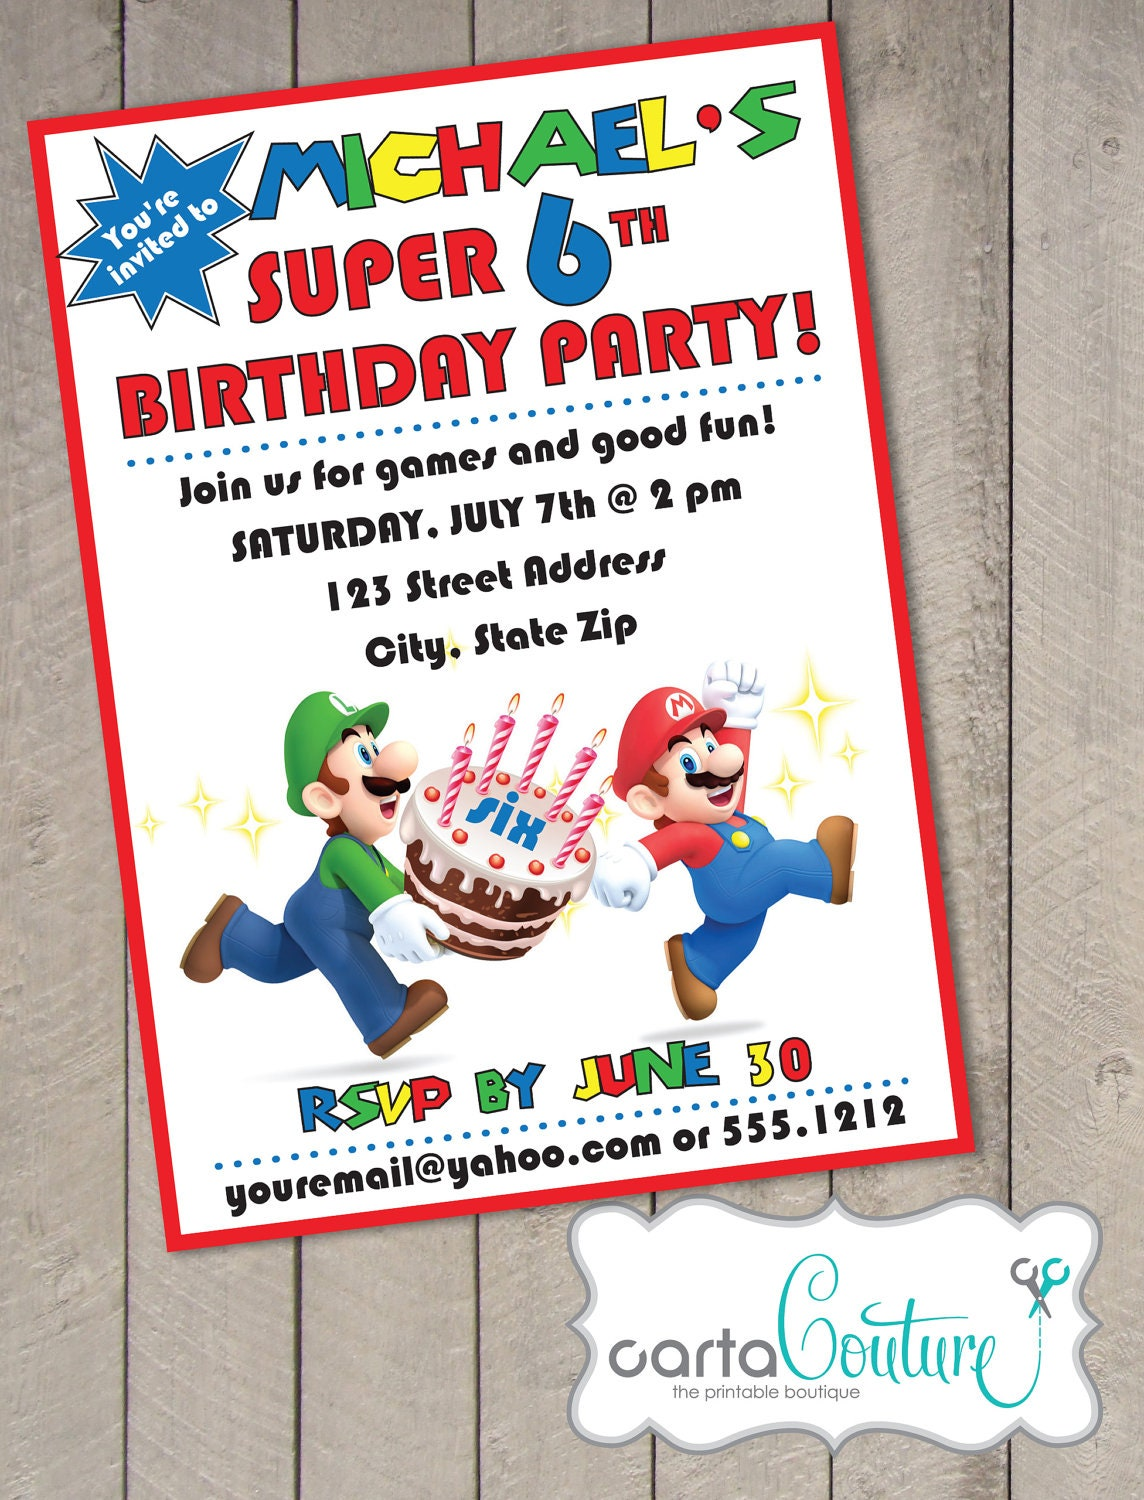 Similiar Super Mario Brothers Birthday Invitations Keywords